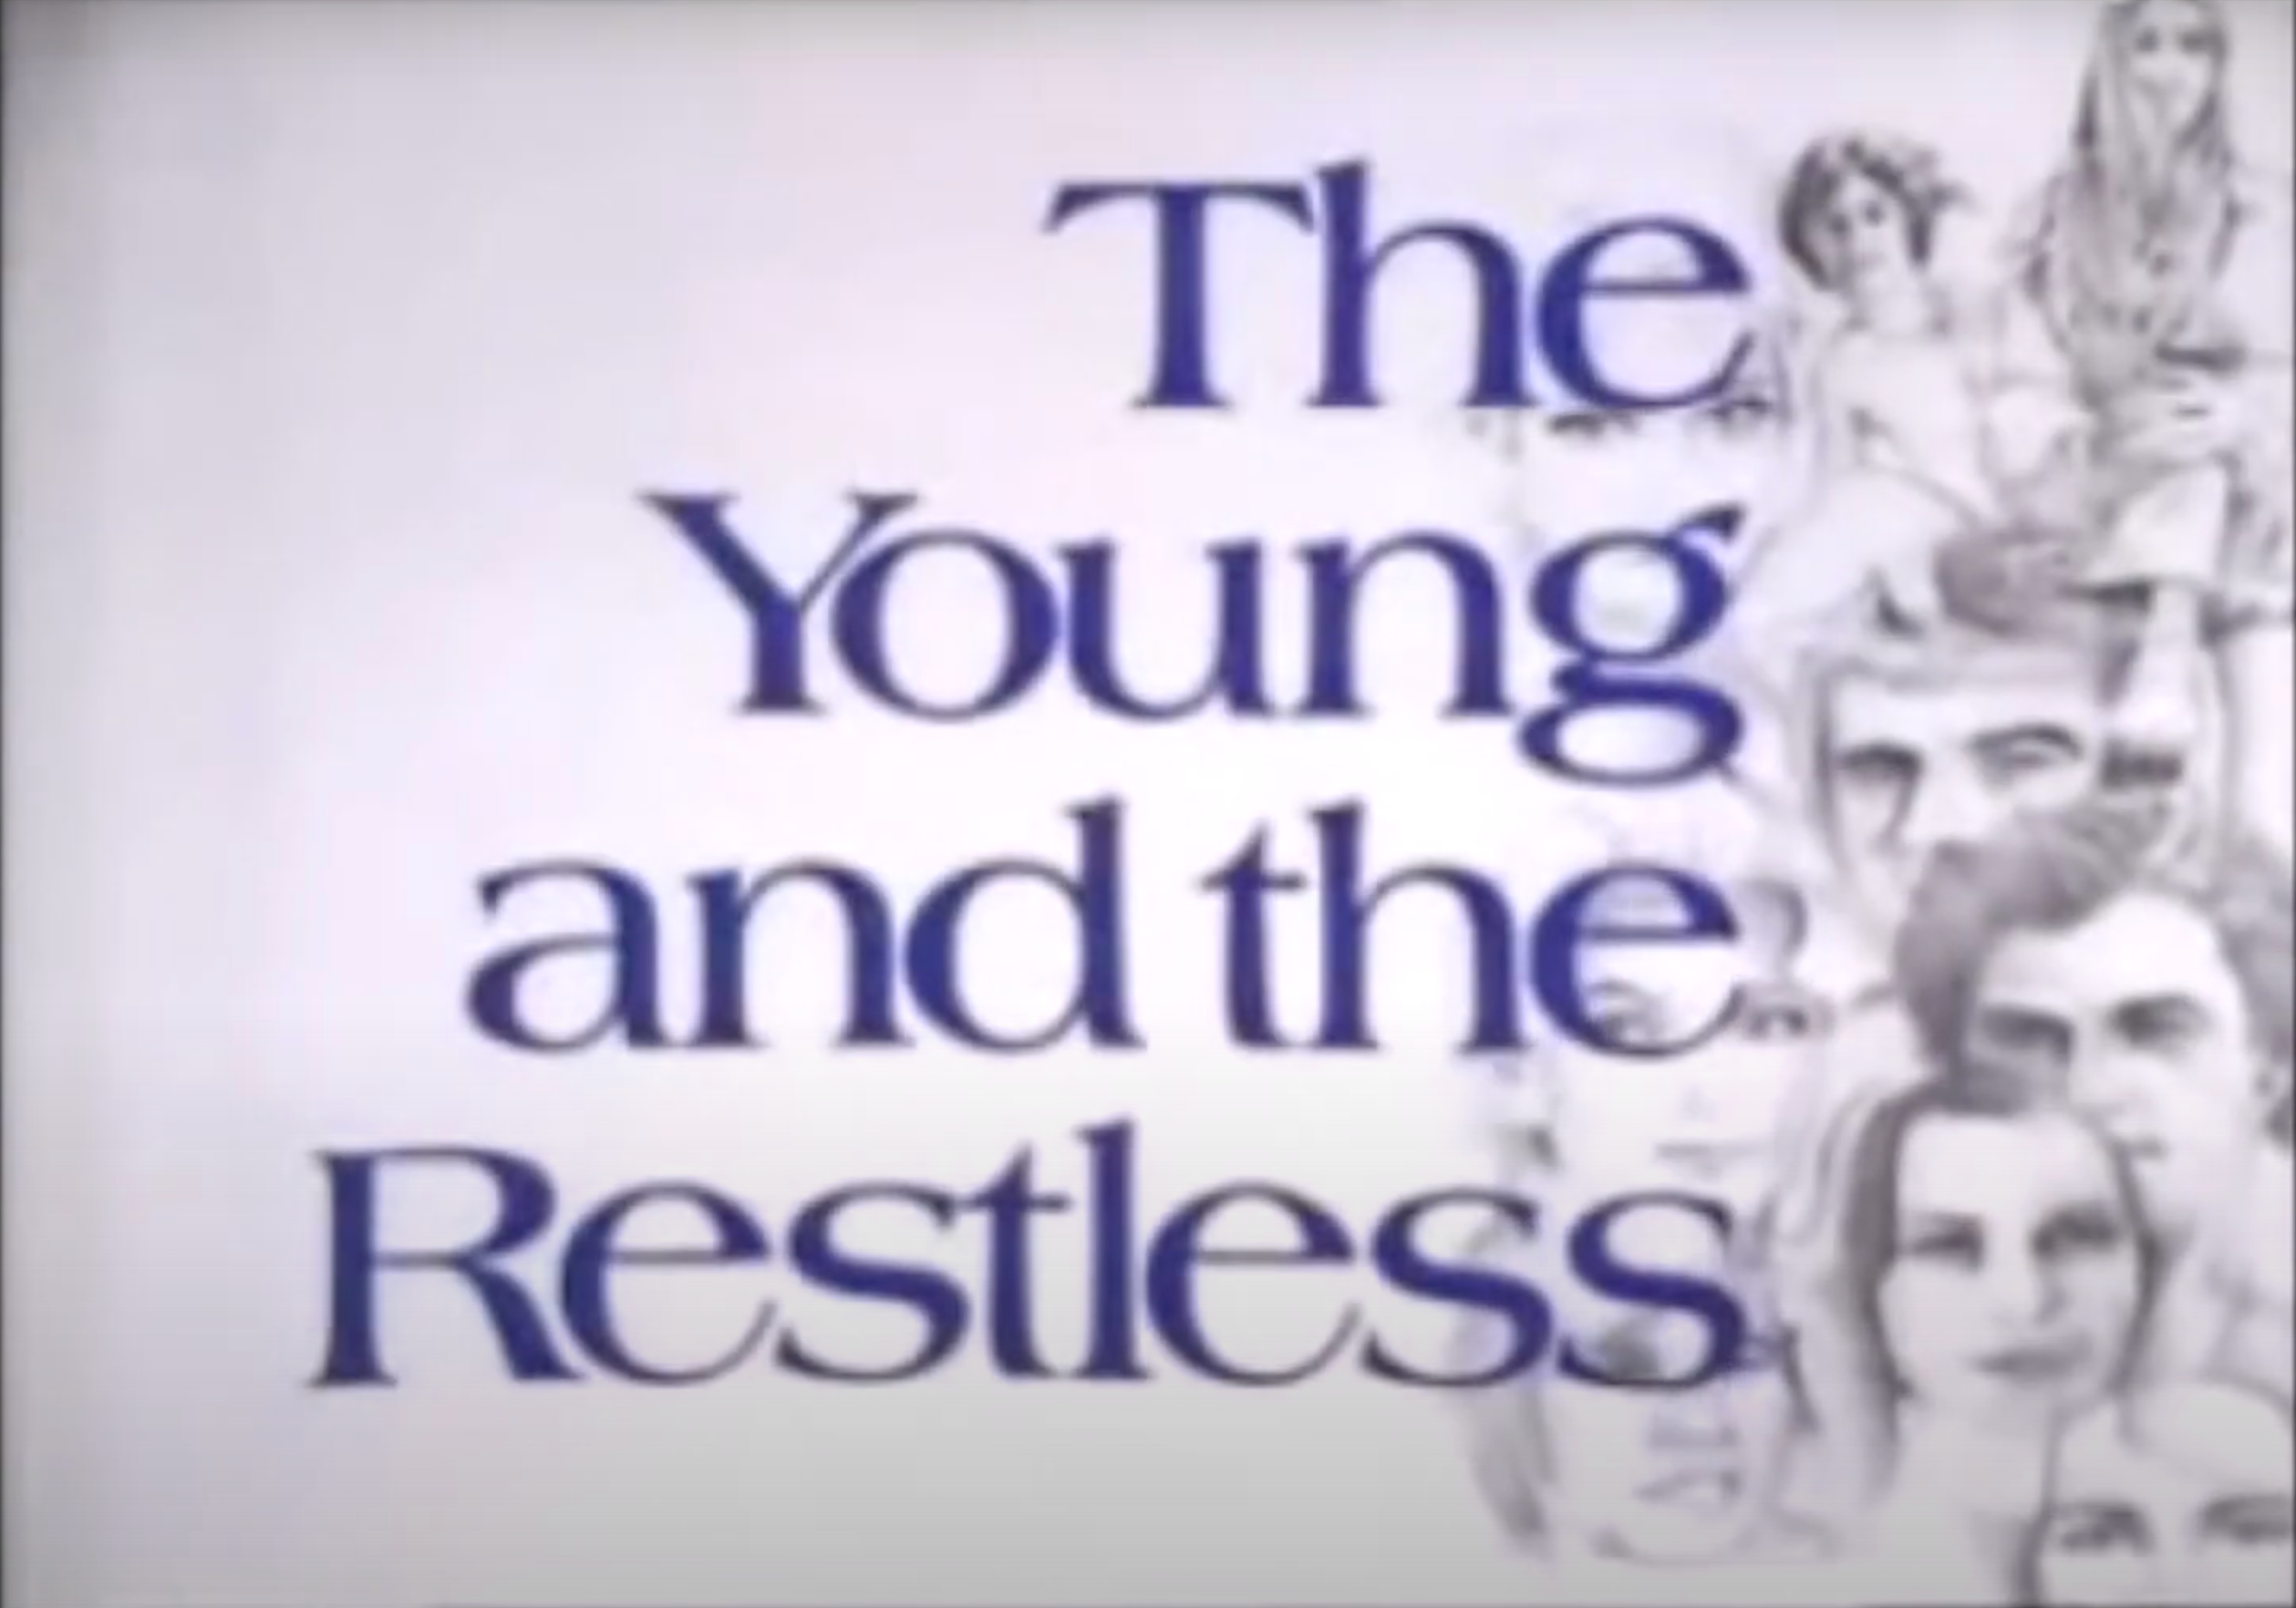 \u200bThe original opening credits for The Young and the Restless